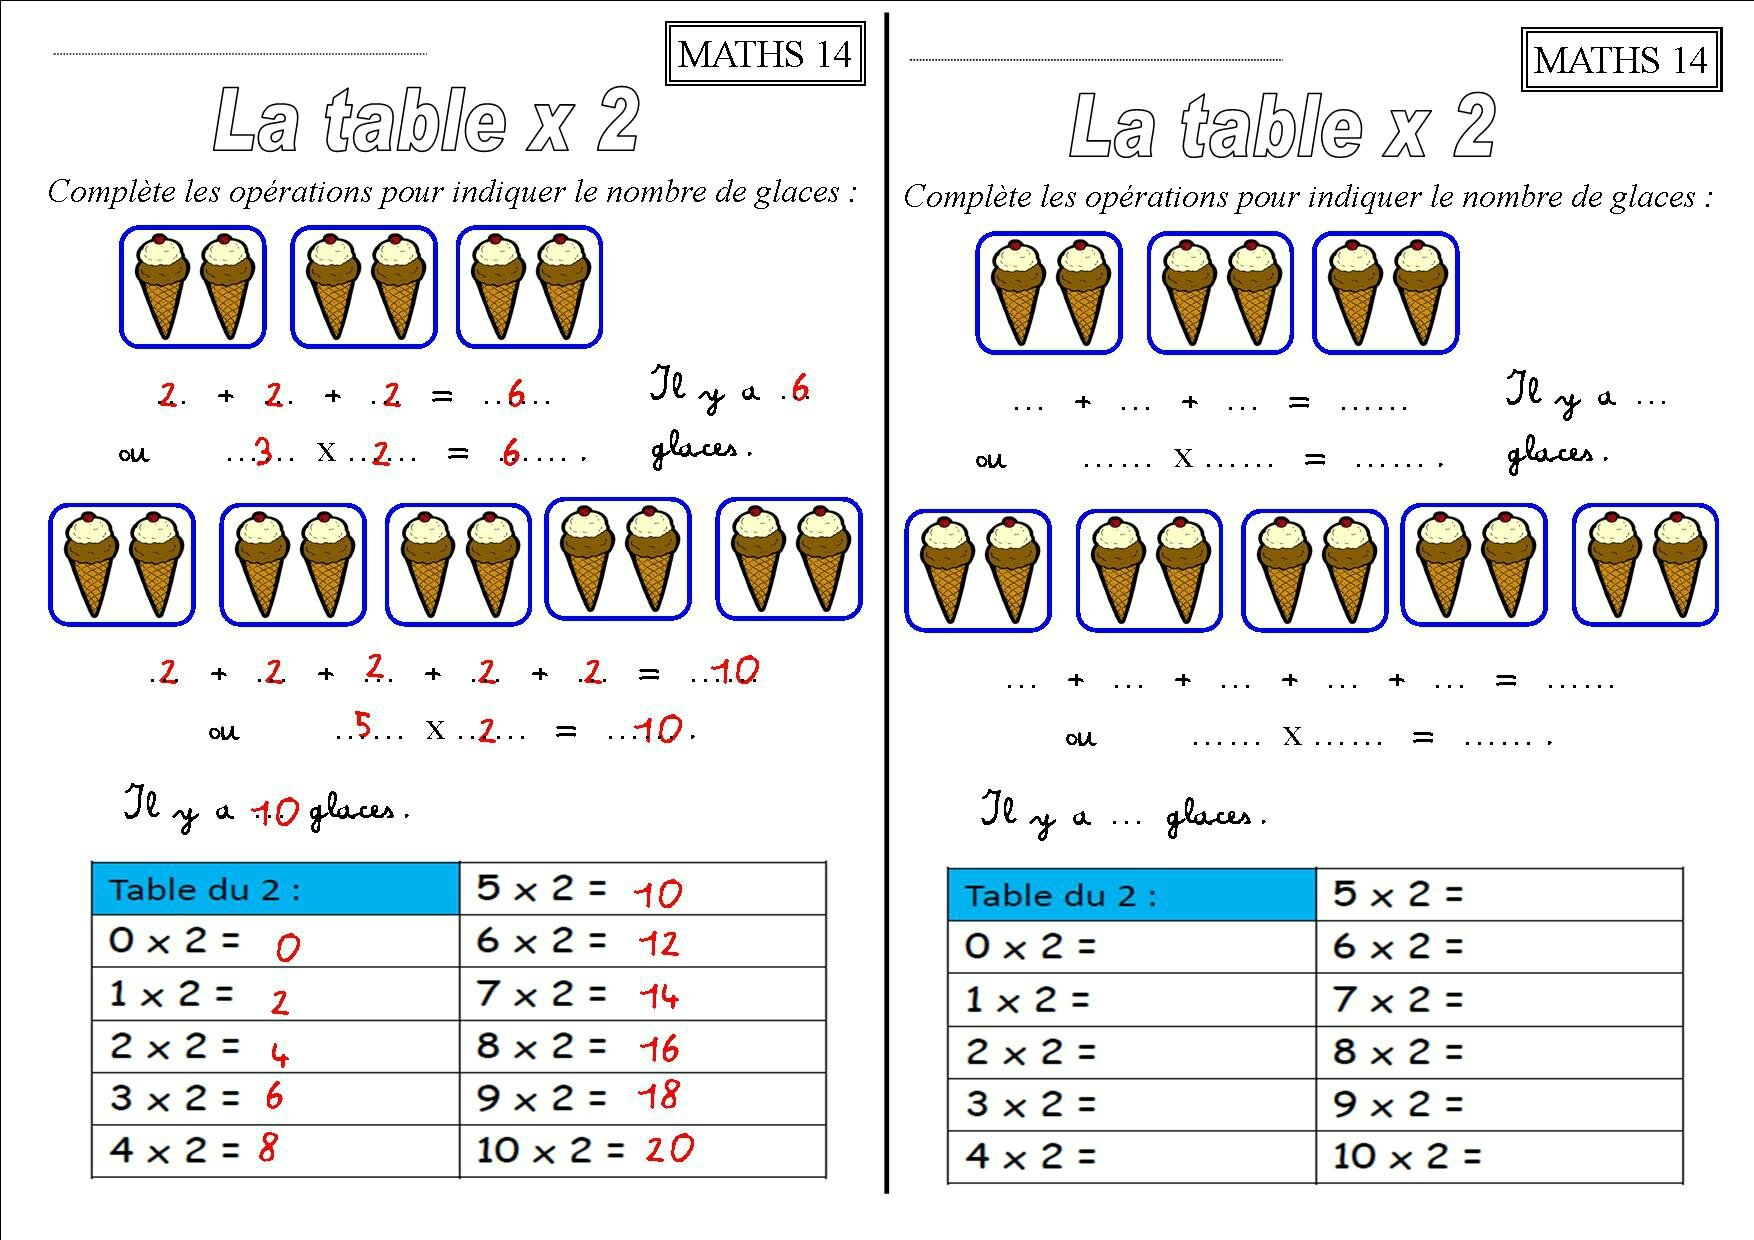 Les tables de multiplication ce1 x 2 x 3 x 4 x 5 x - Table de multiplication exercice ce1 ...